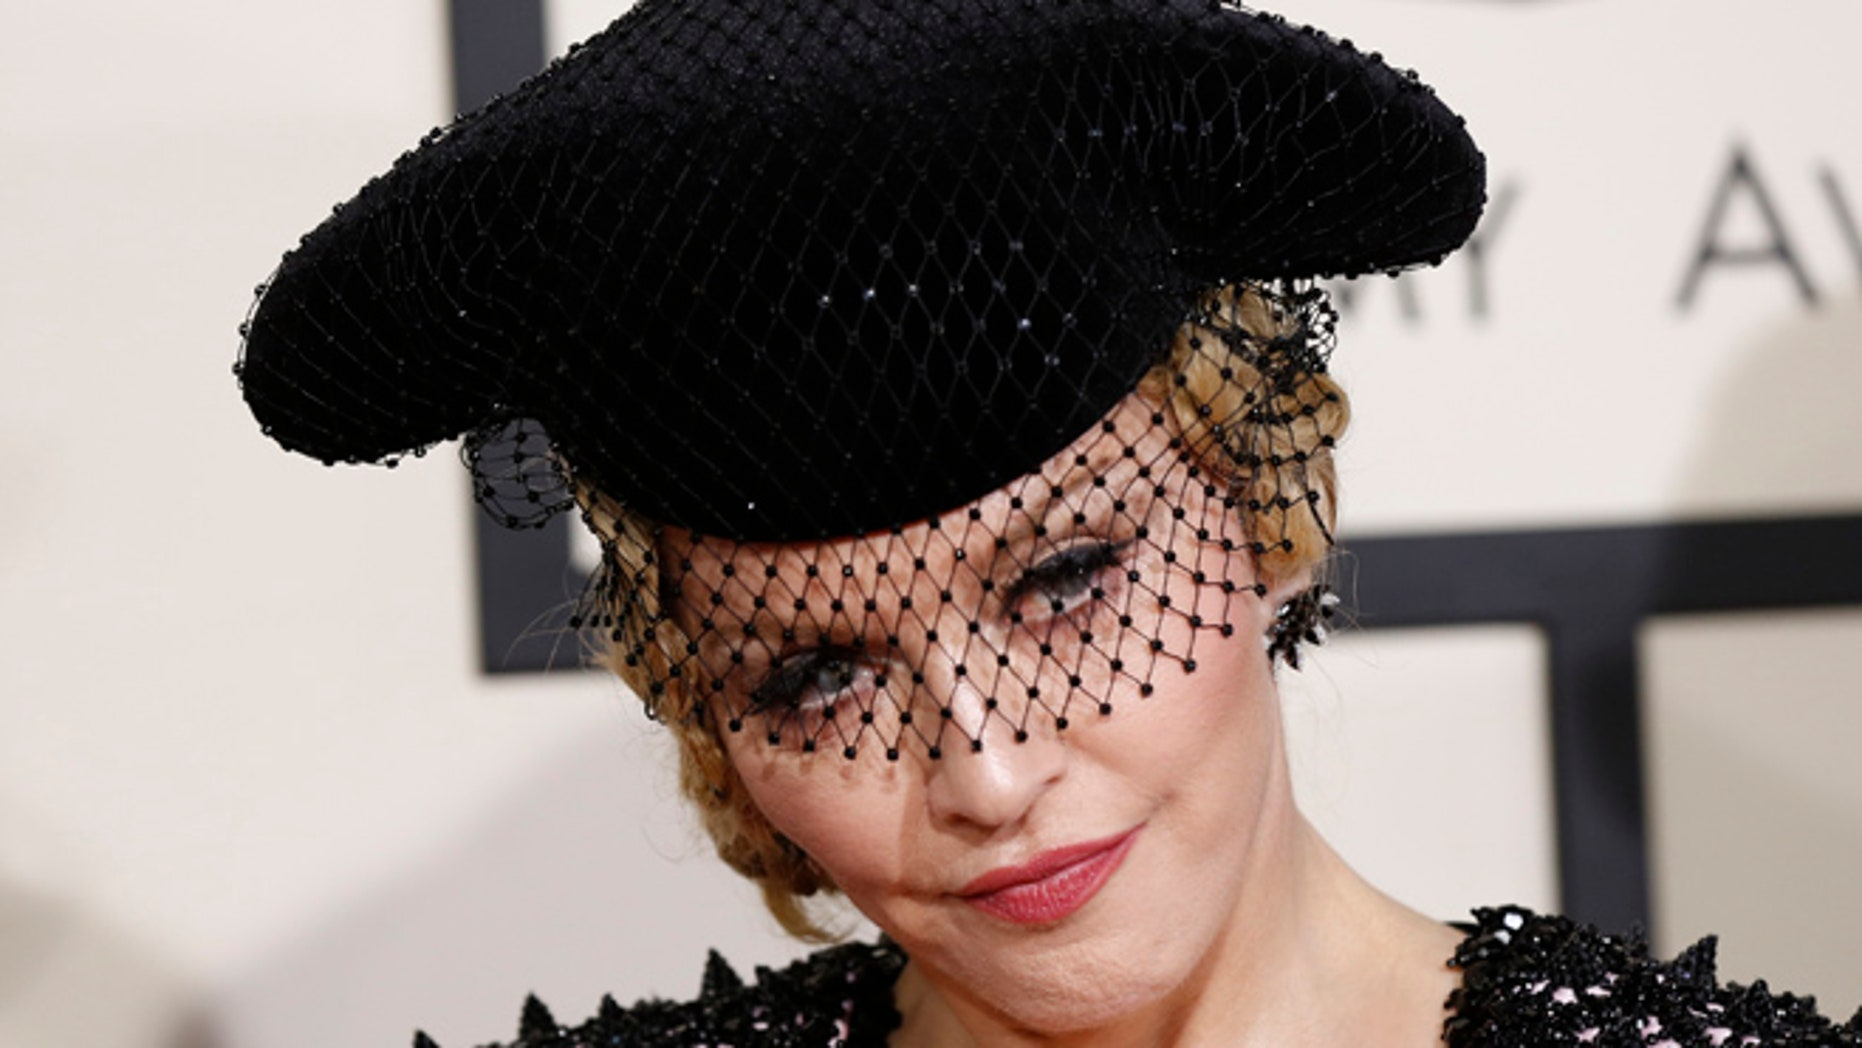 February 8, 2015. Madonna arrives at the 57th annual Grammy Awards in Los Angeles, California.